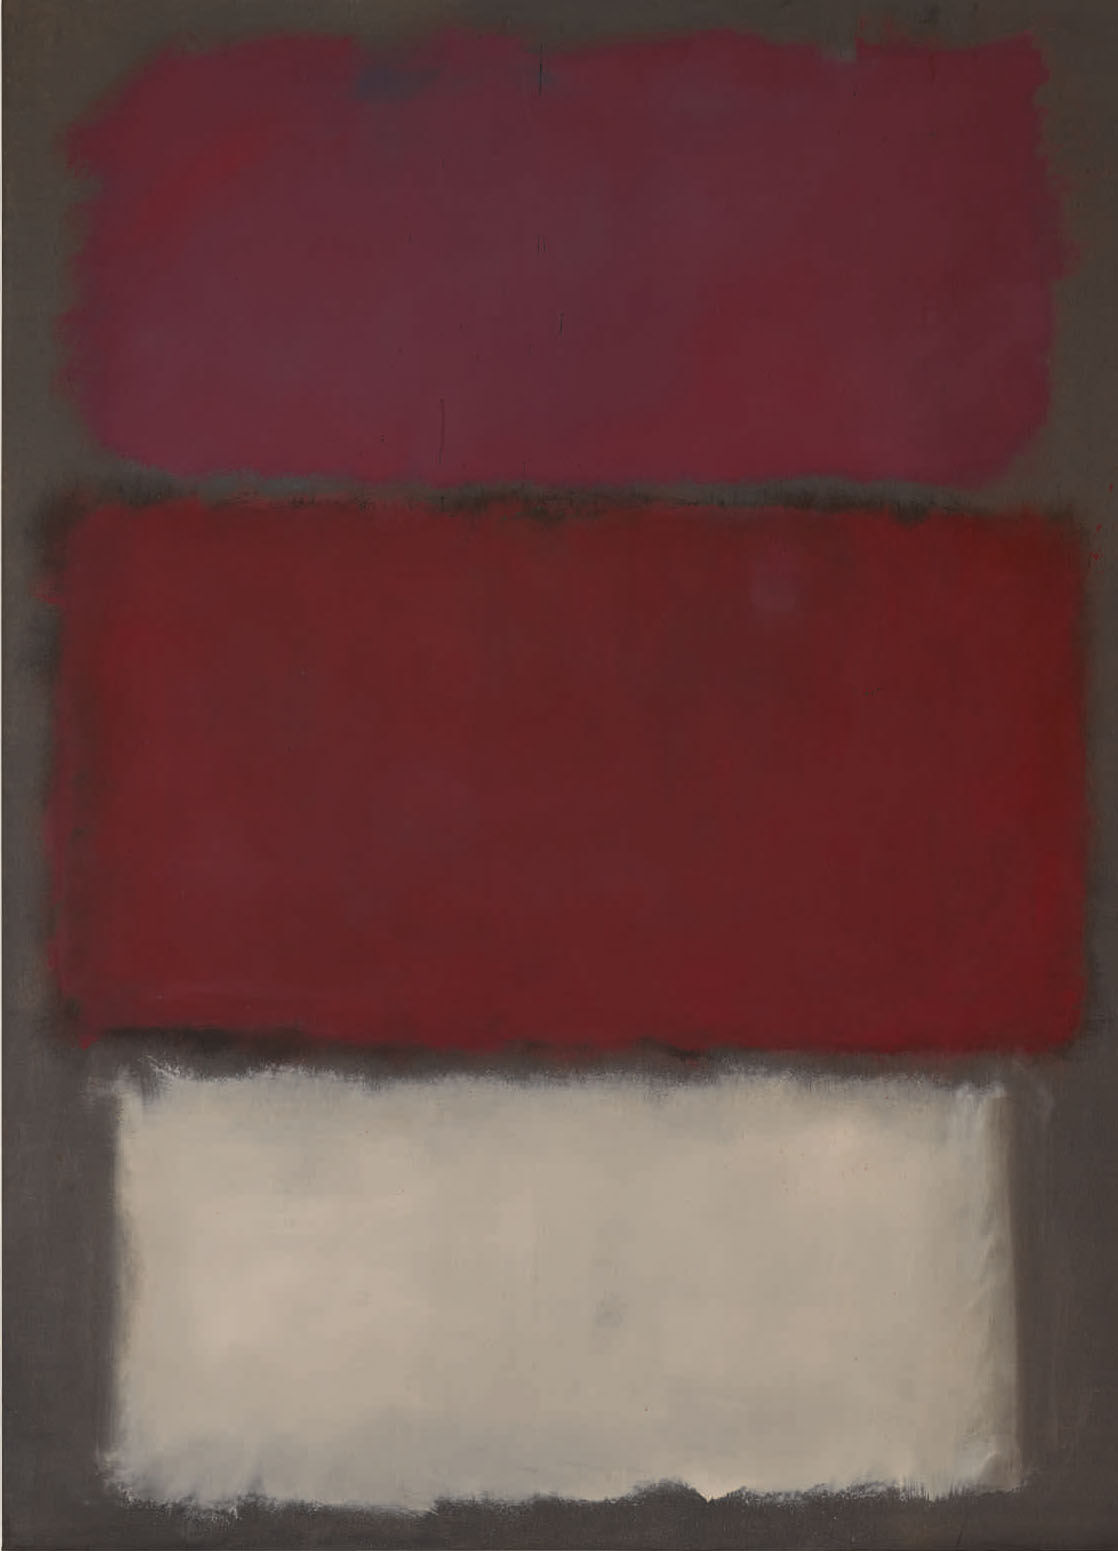 Mark Rothko, Untitled, 1960. Courtesy of Sotheby's.